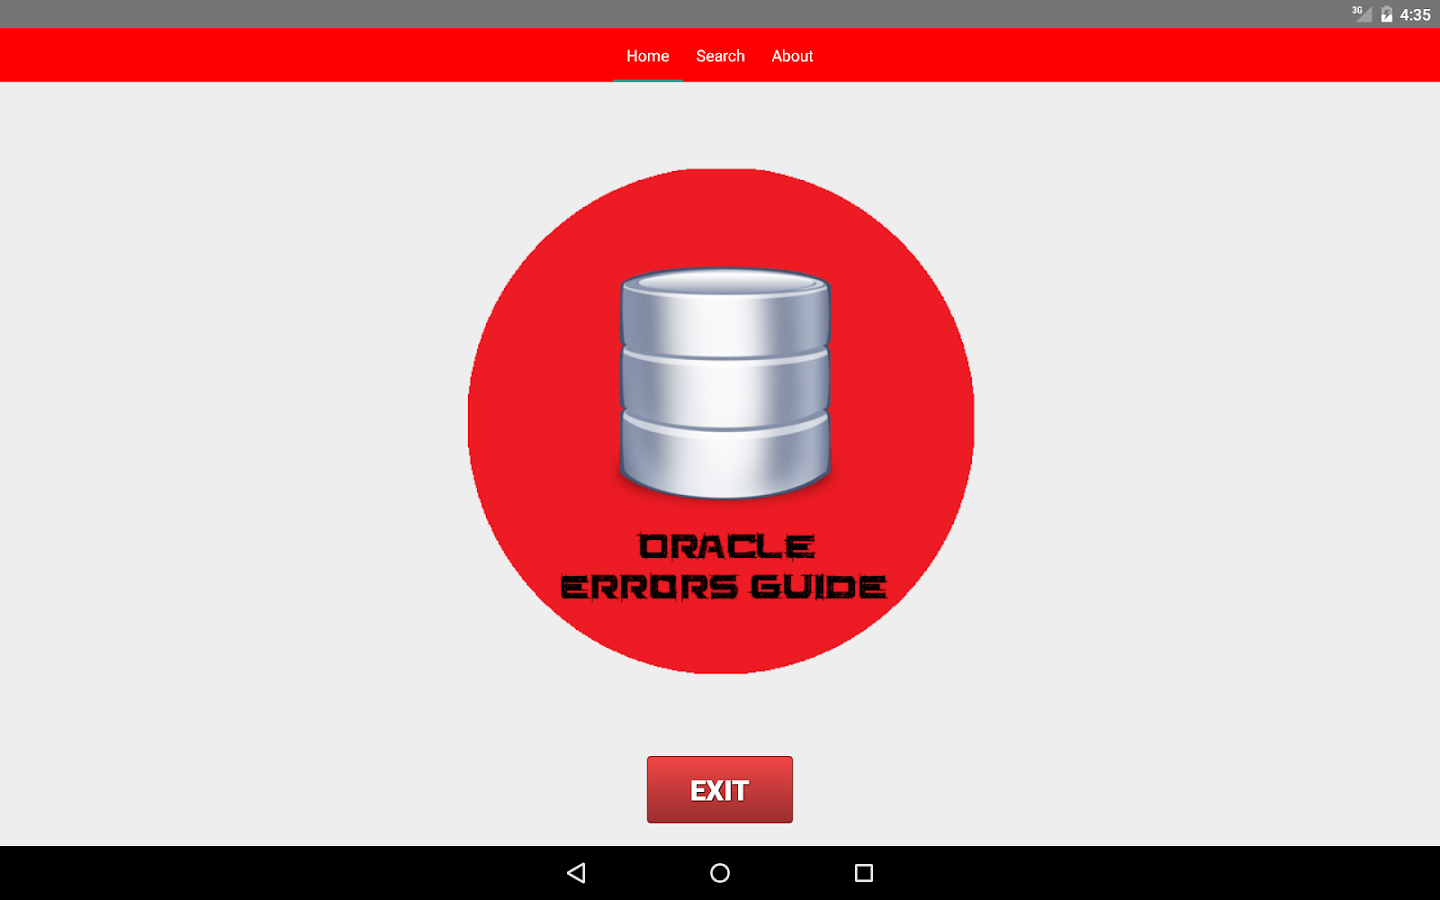 Oracle Db 11g Errors Guide Android Apps On Google Play